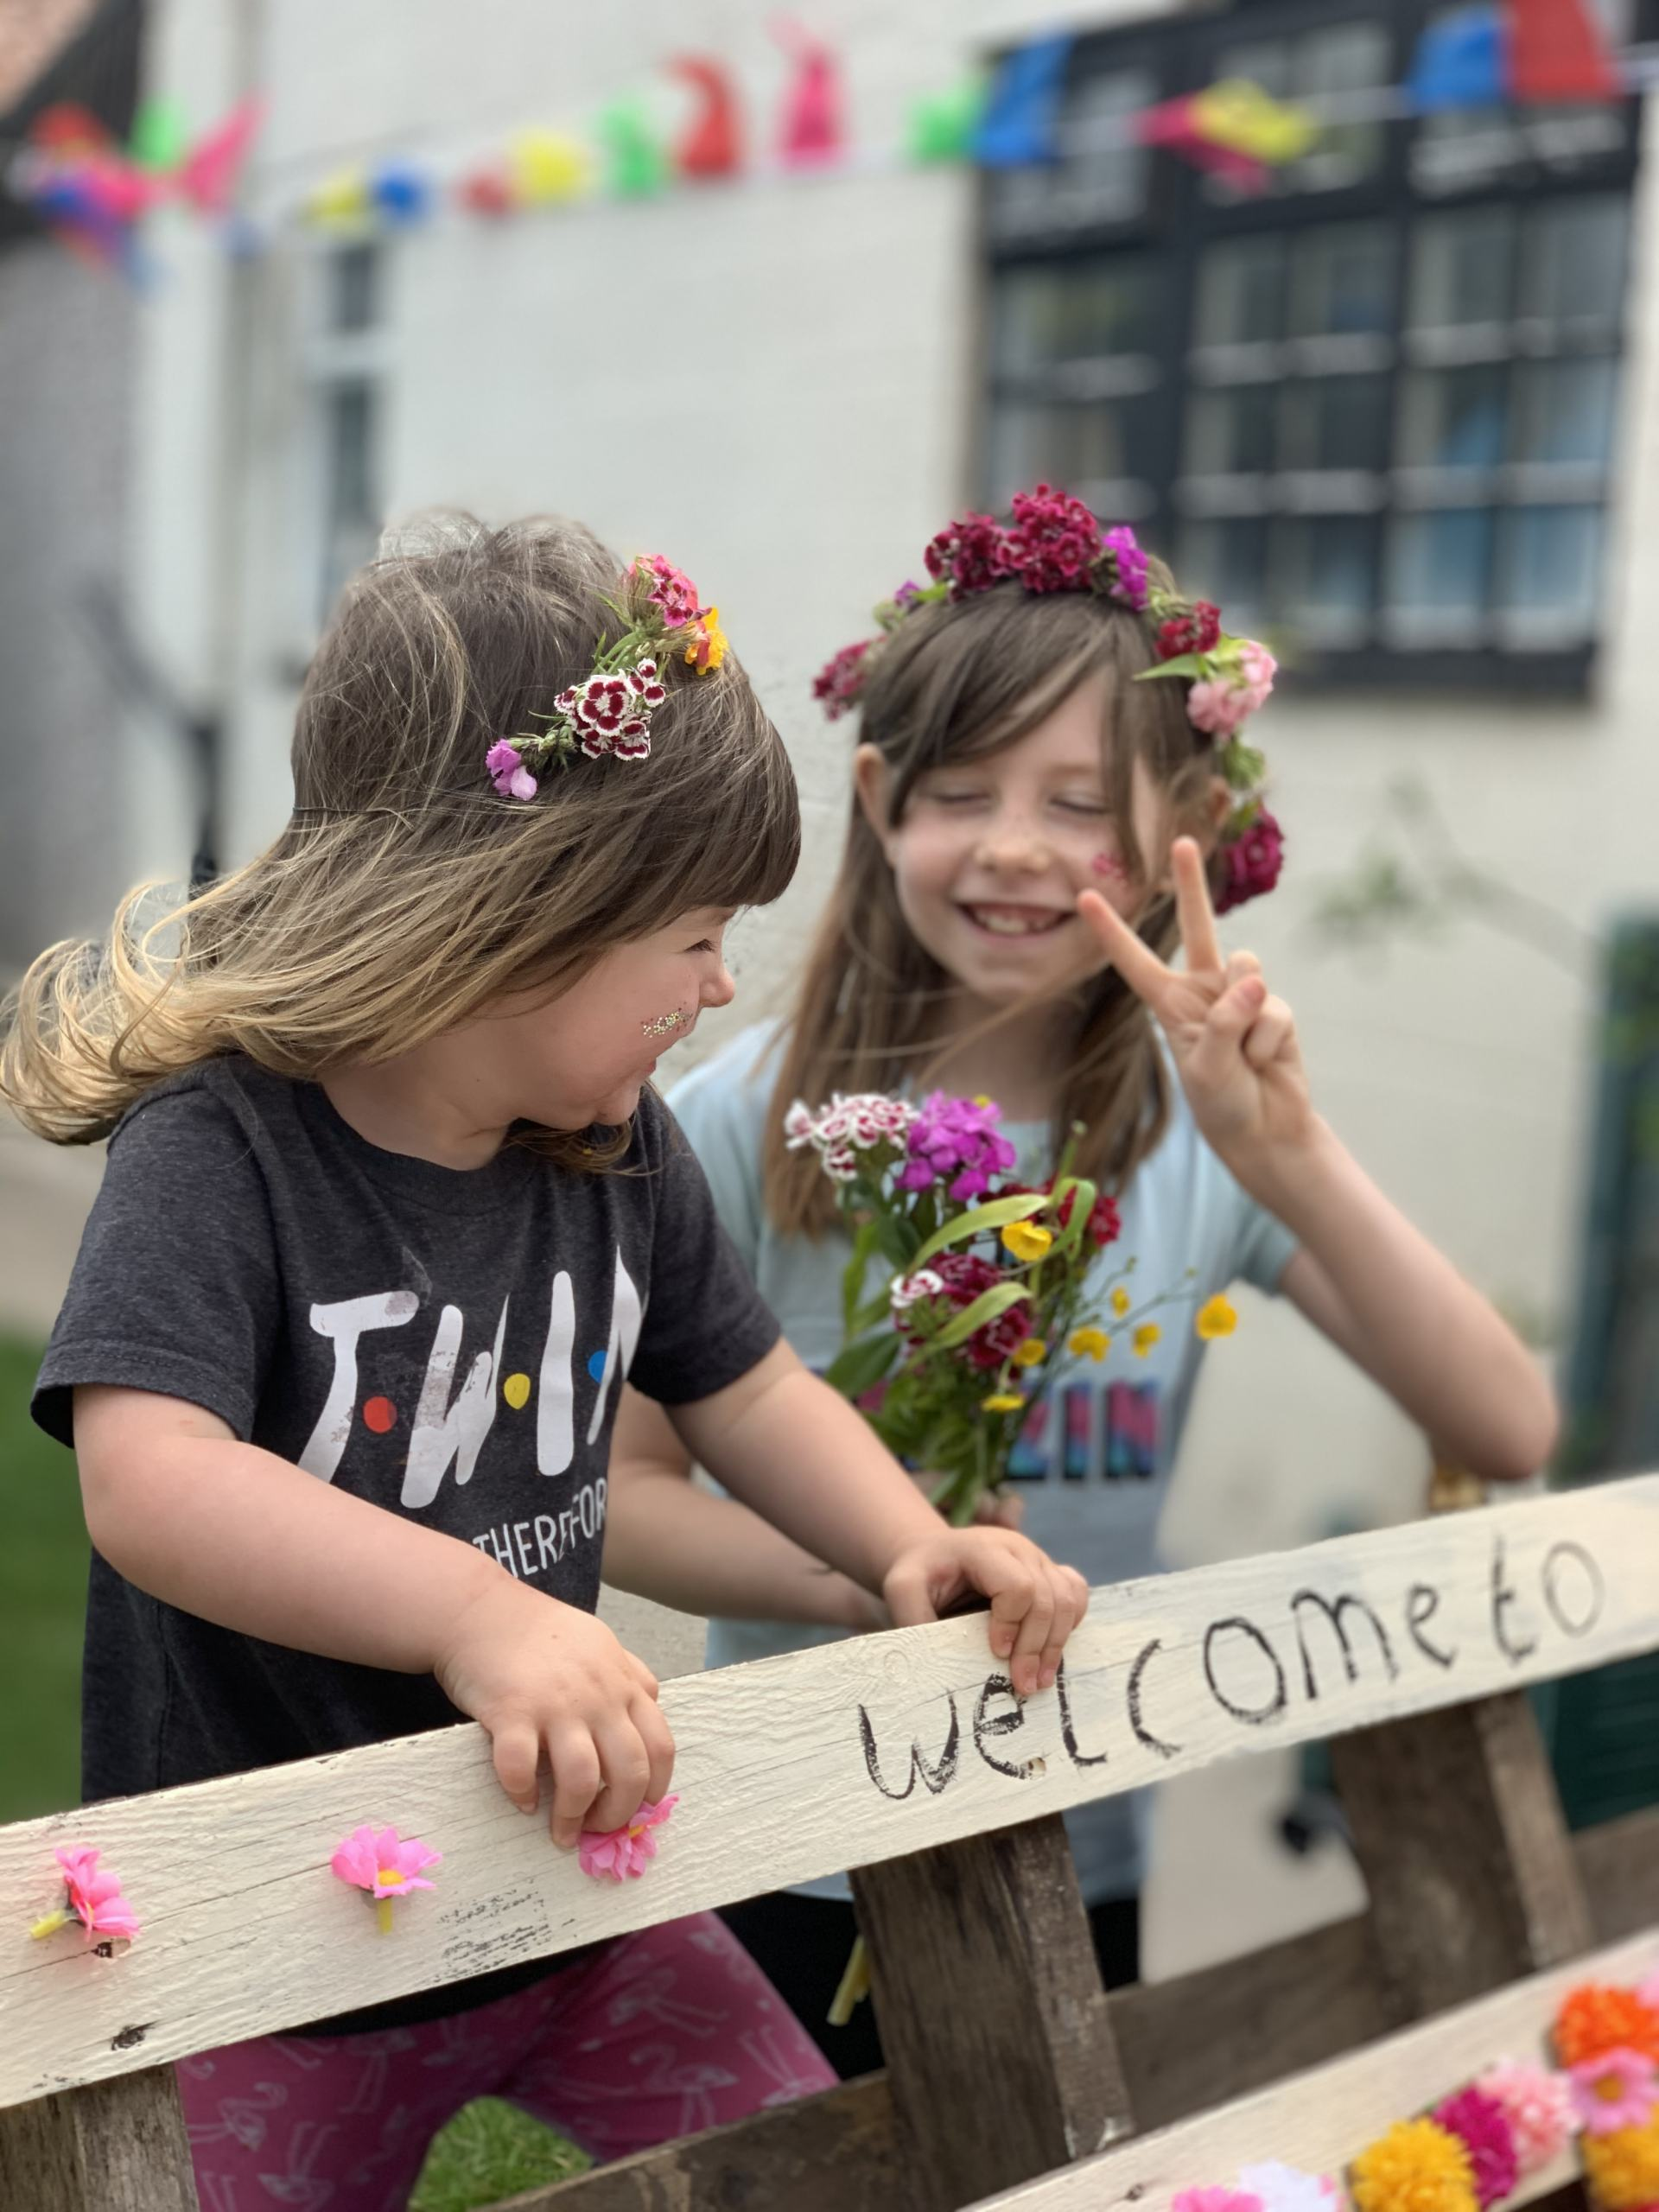 two girls with flower crowns on